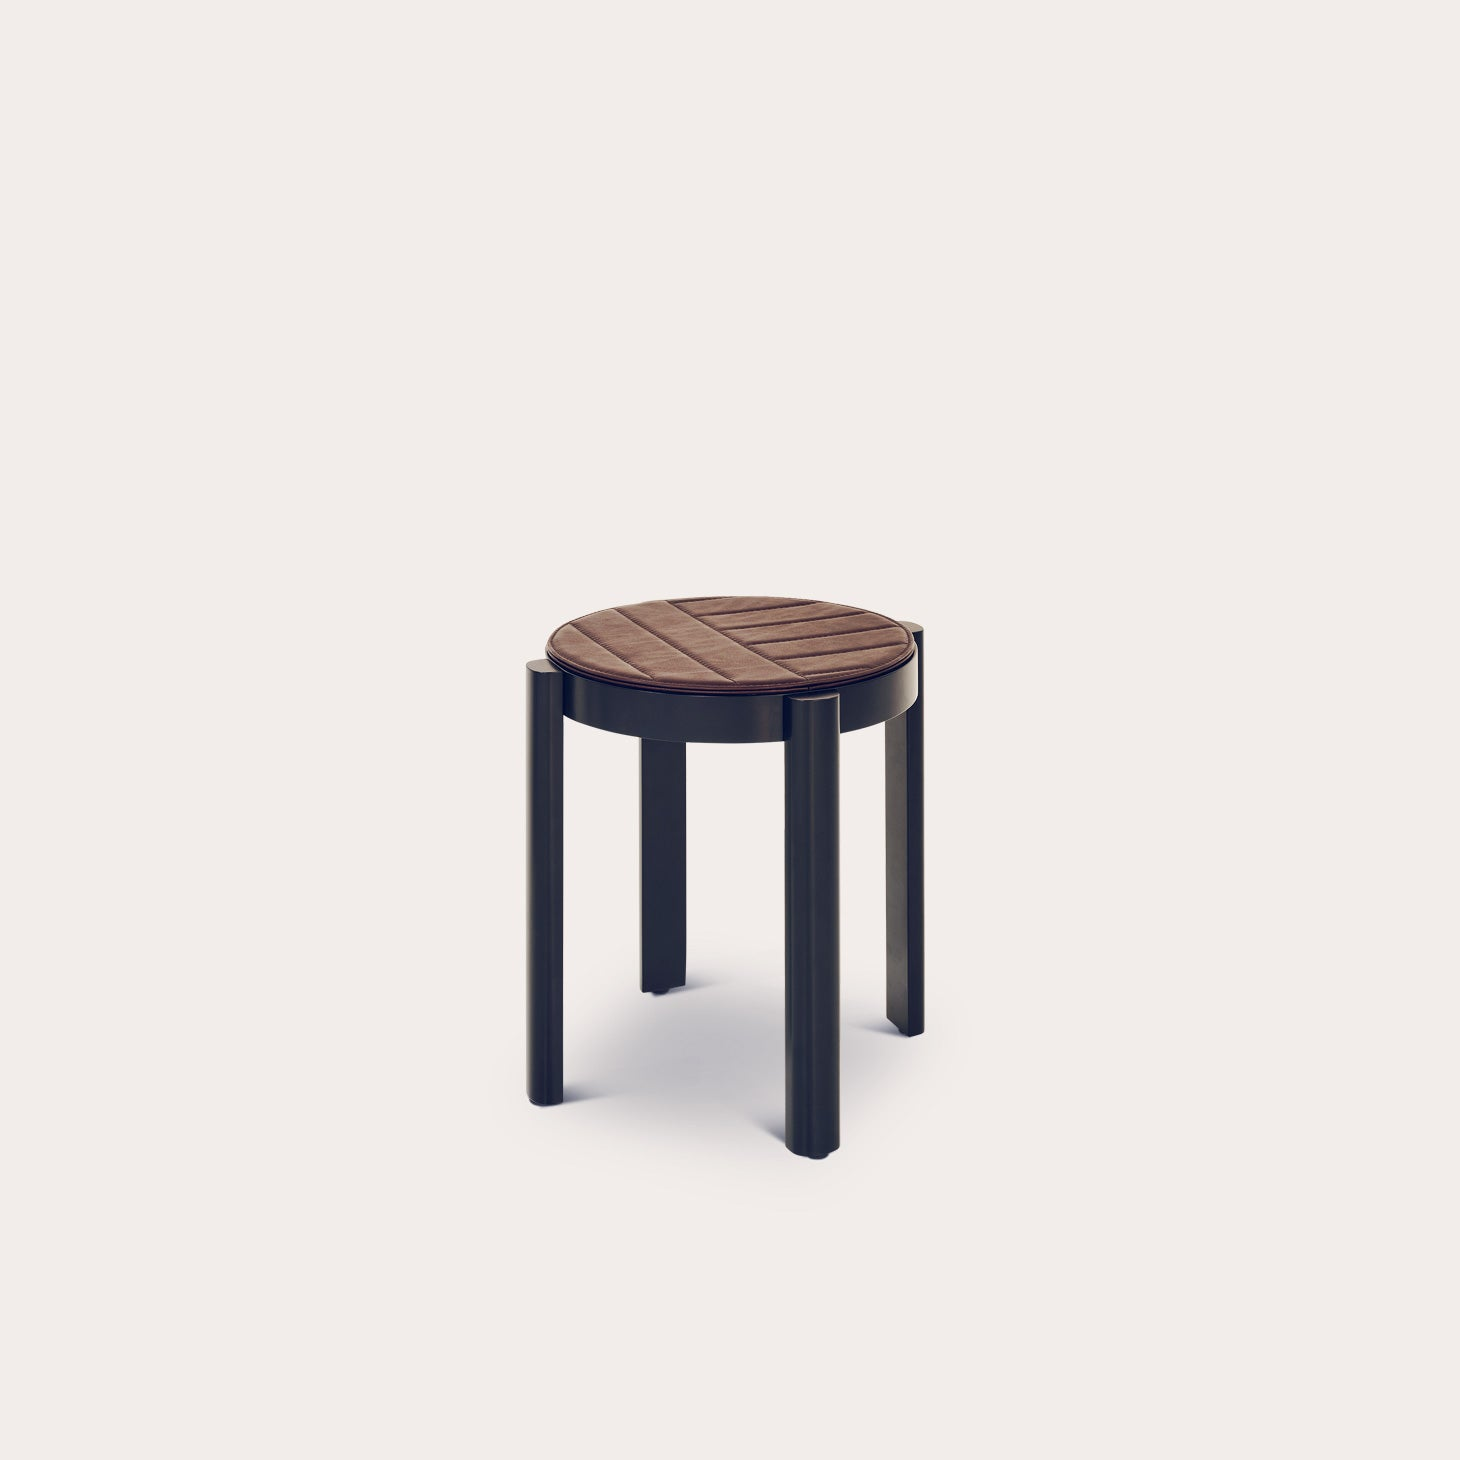 Melange Stool Table Tables Monica Förster Designer Furniture Sku: 758-230-10037